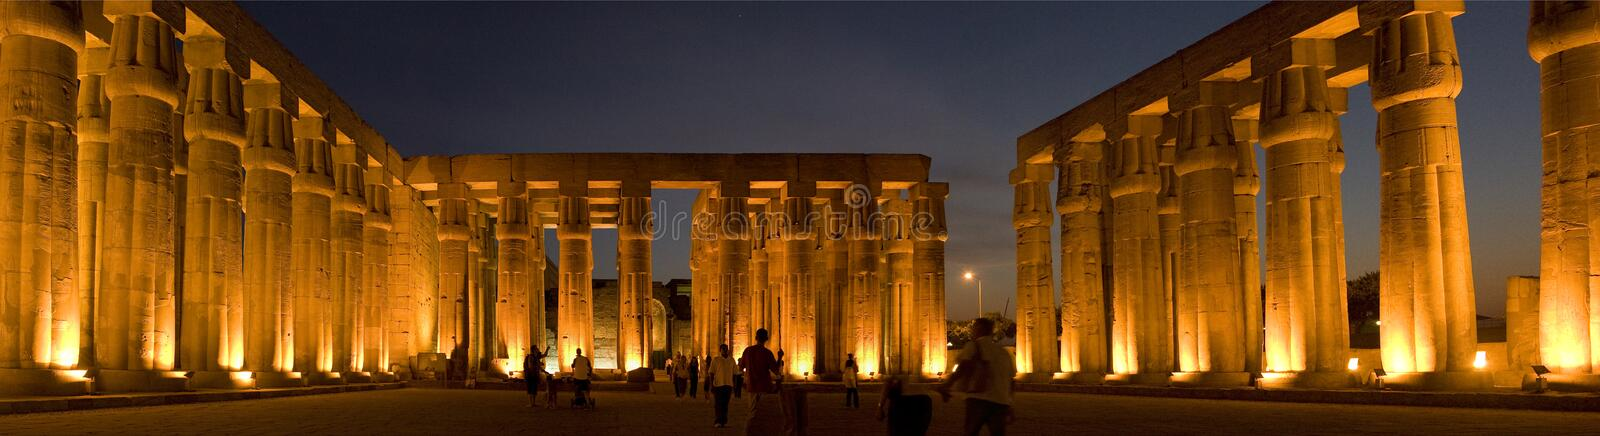 Luxor temple, Egypt stock photos